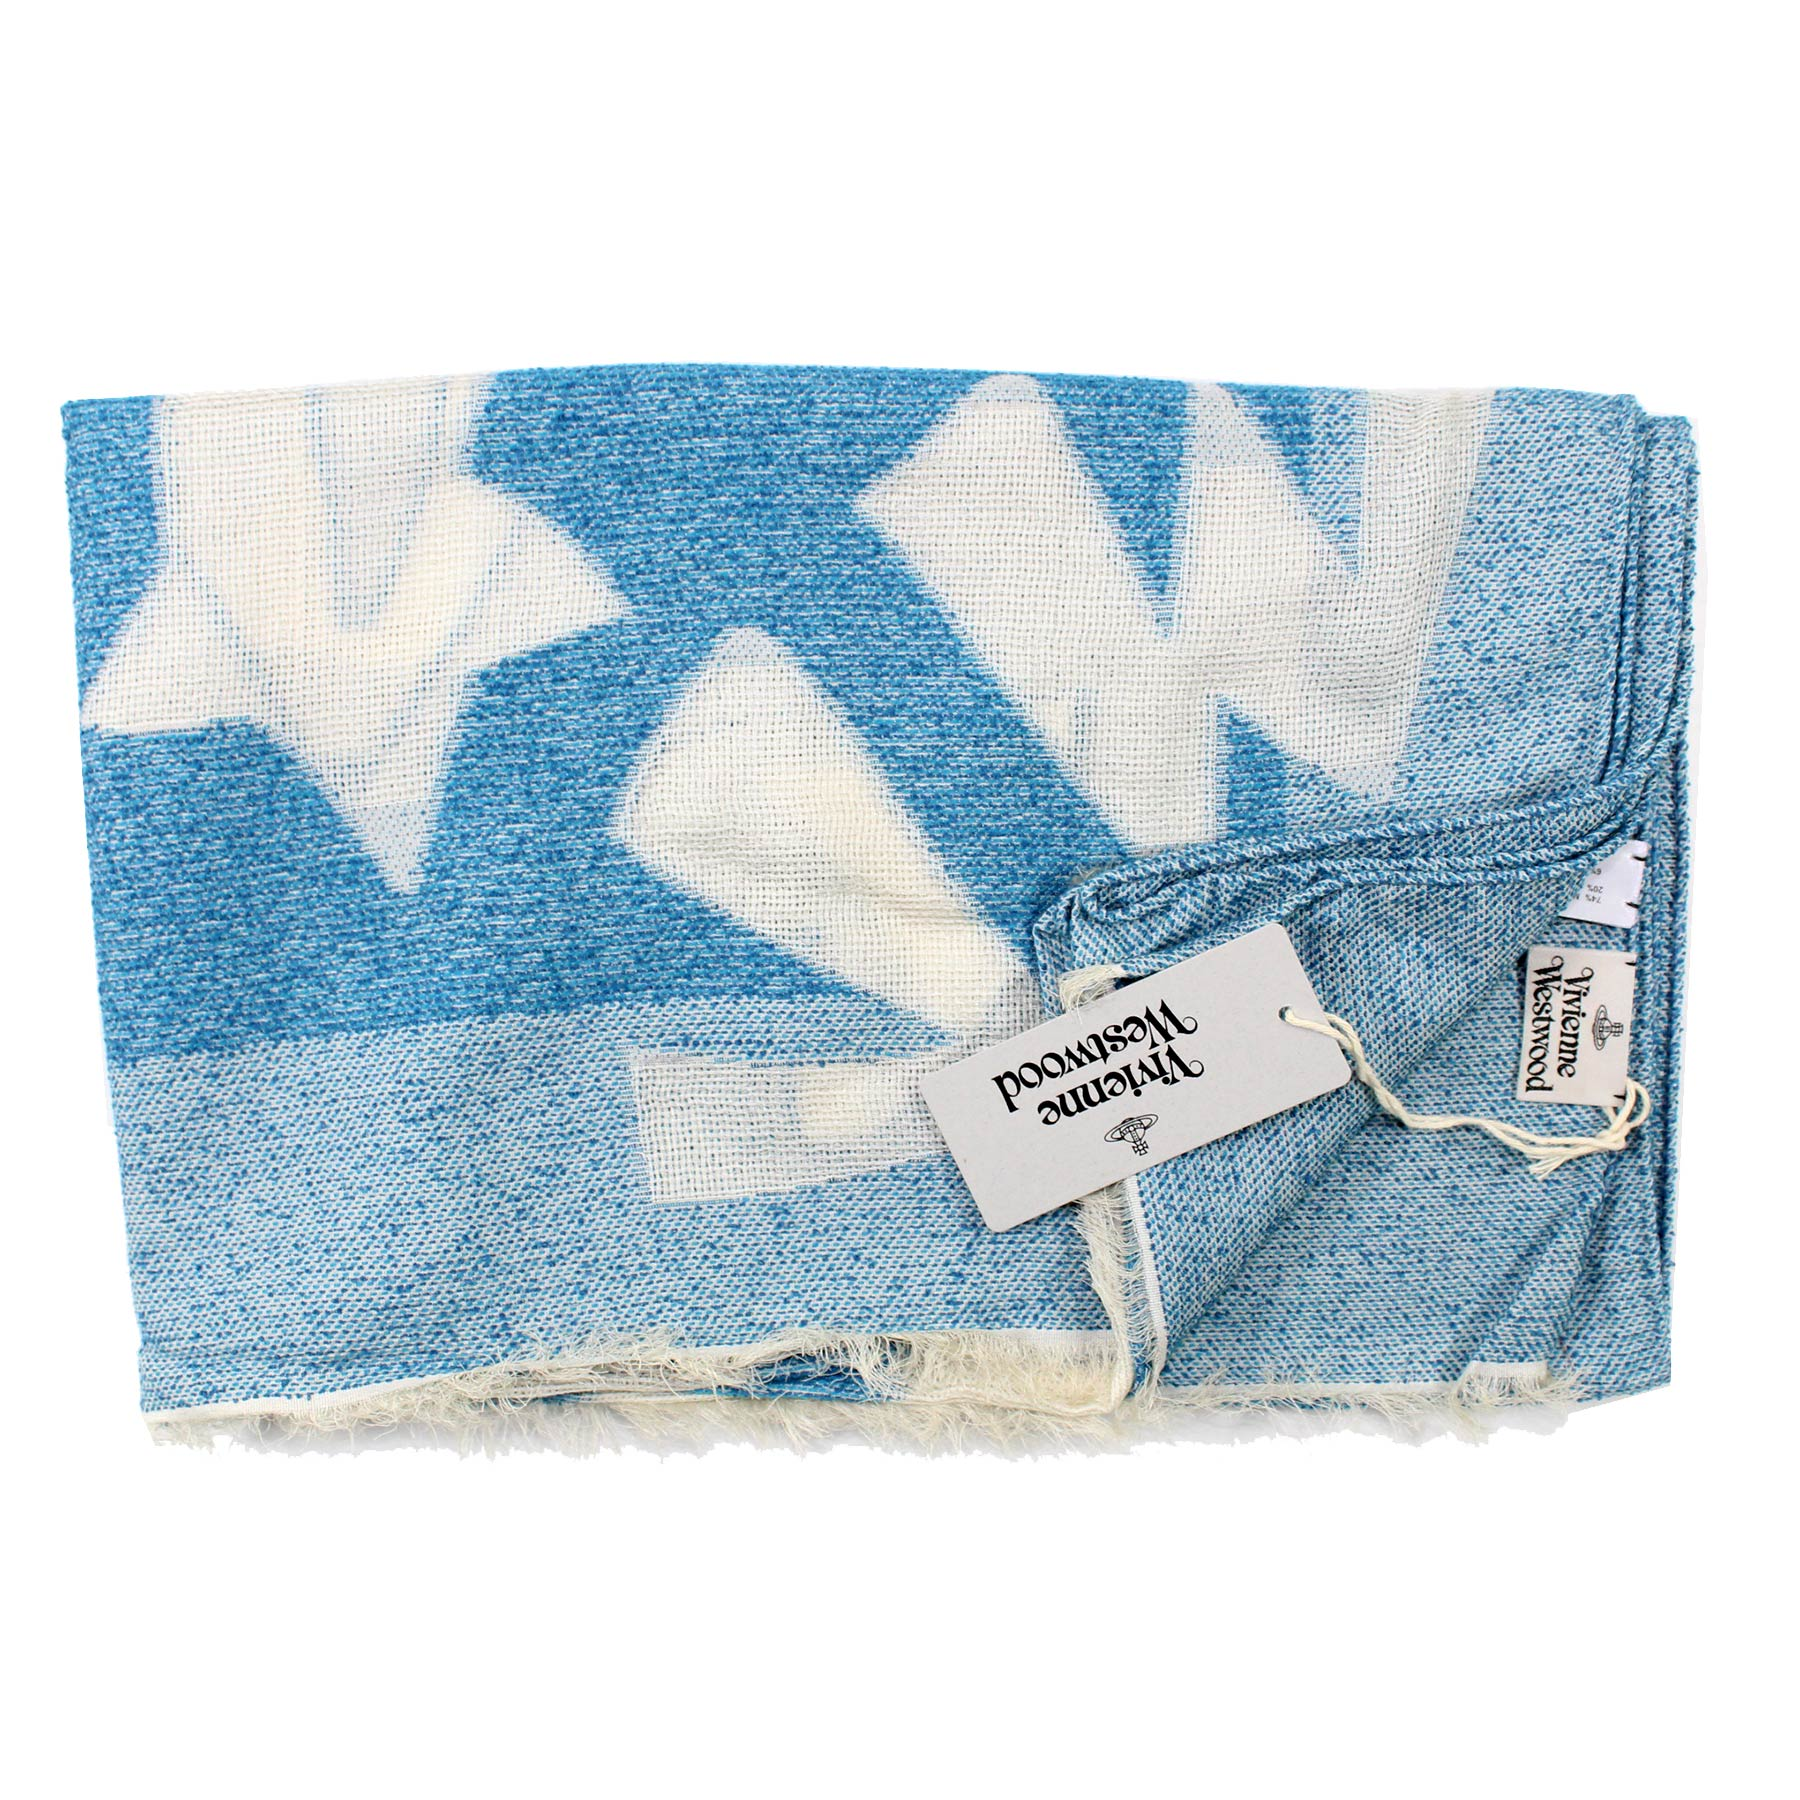 Vivienne Westwood Aqua White Shawl - Modal Cotton Scarf REDUCED - FINAL SALE